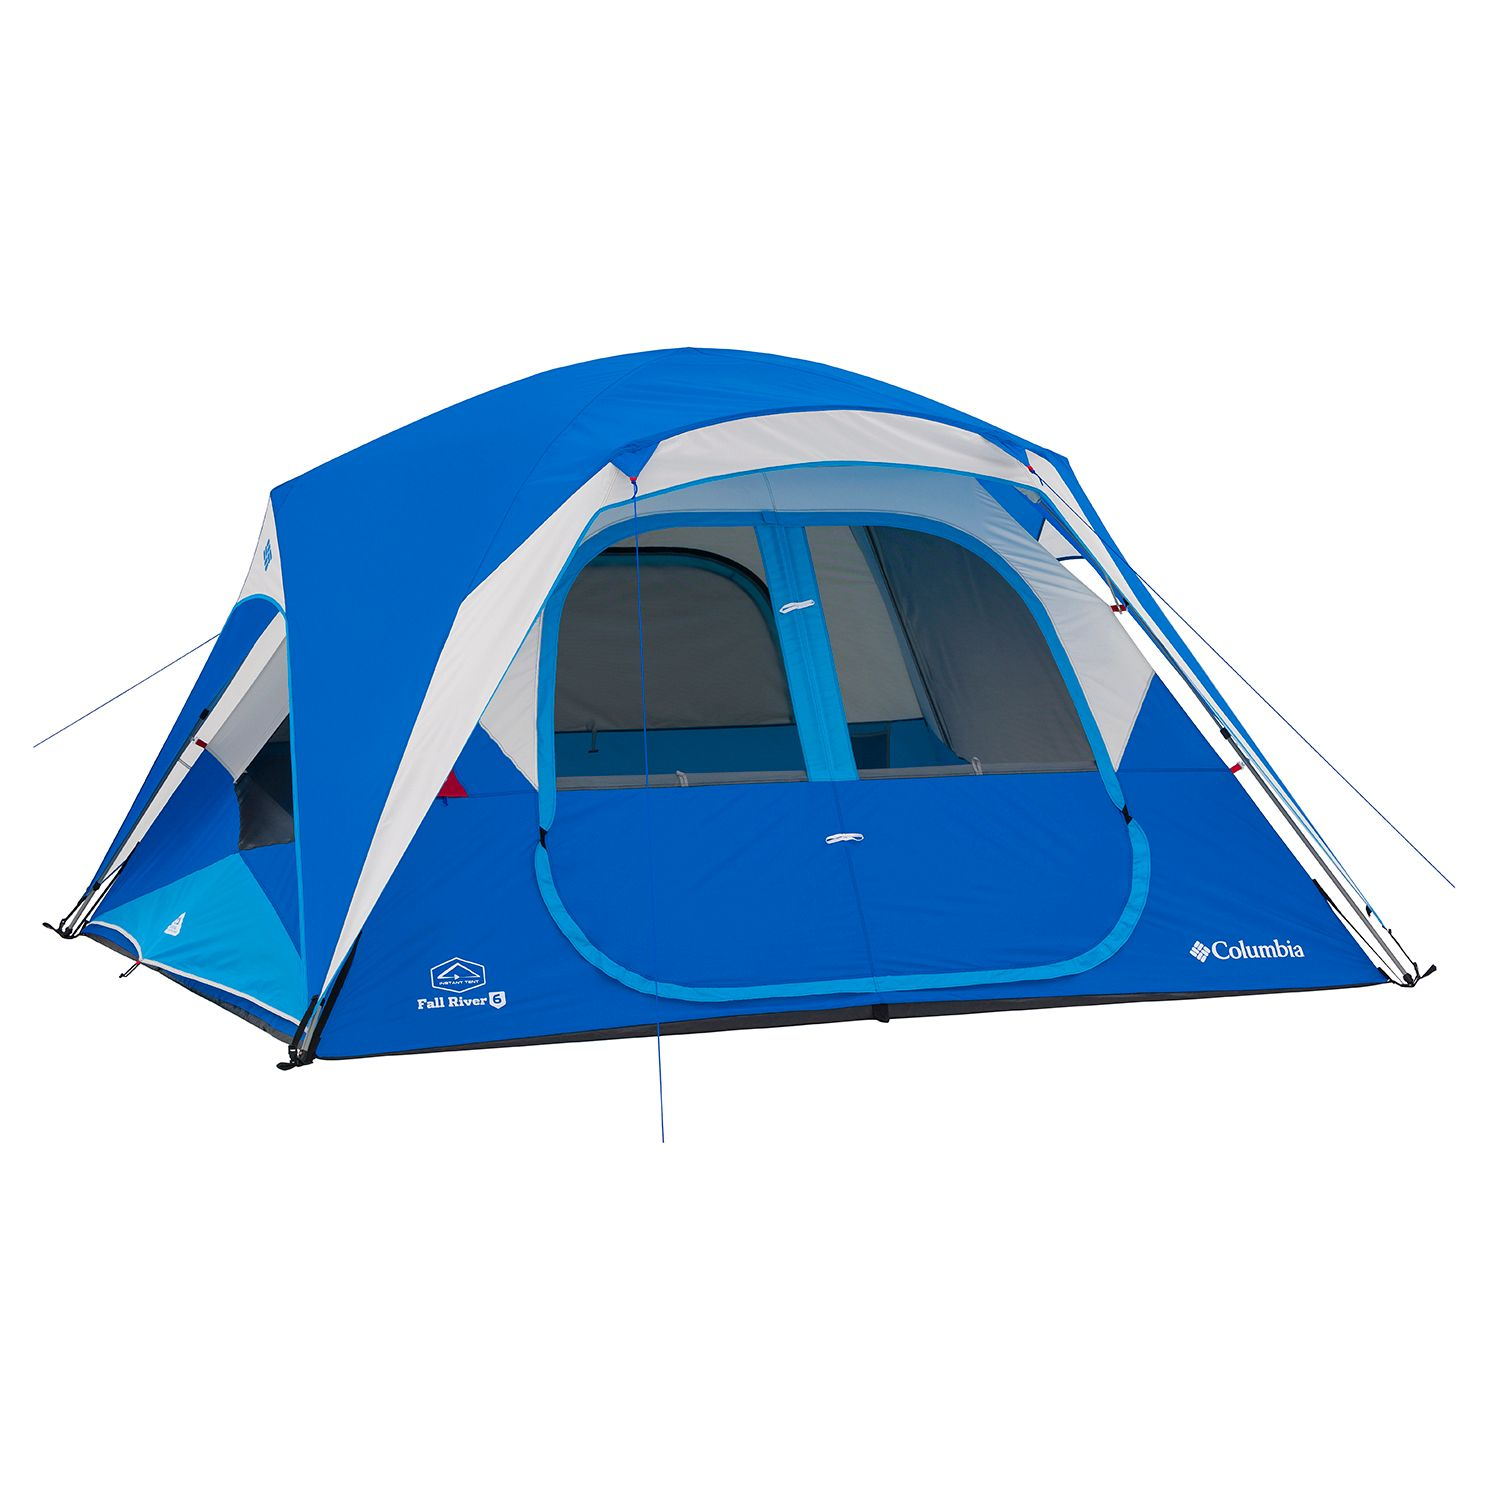 Columbia 6-Person Instant Dome Tent  sc 1 st  Kohlu0027s & 6-Person Instant Dome Tent